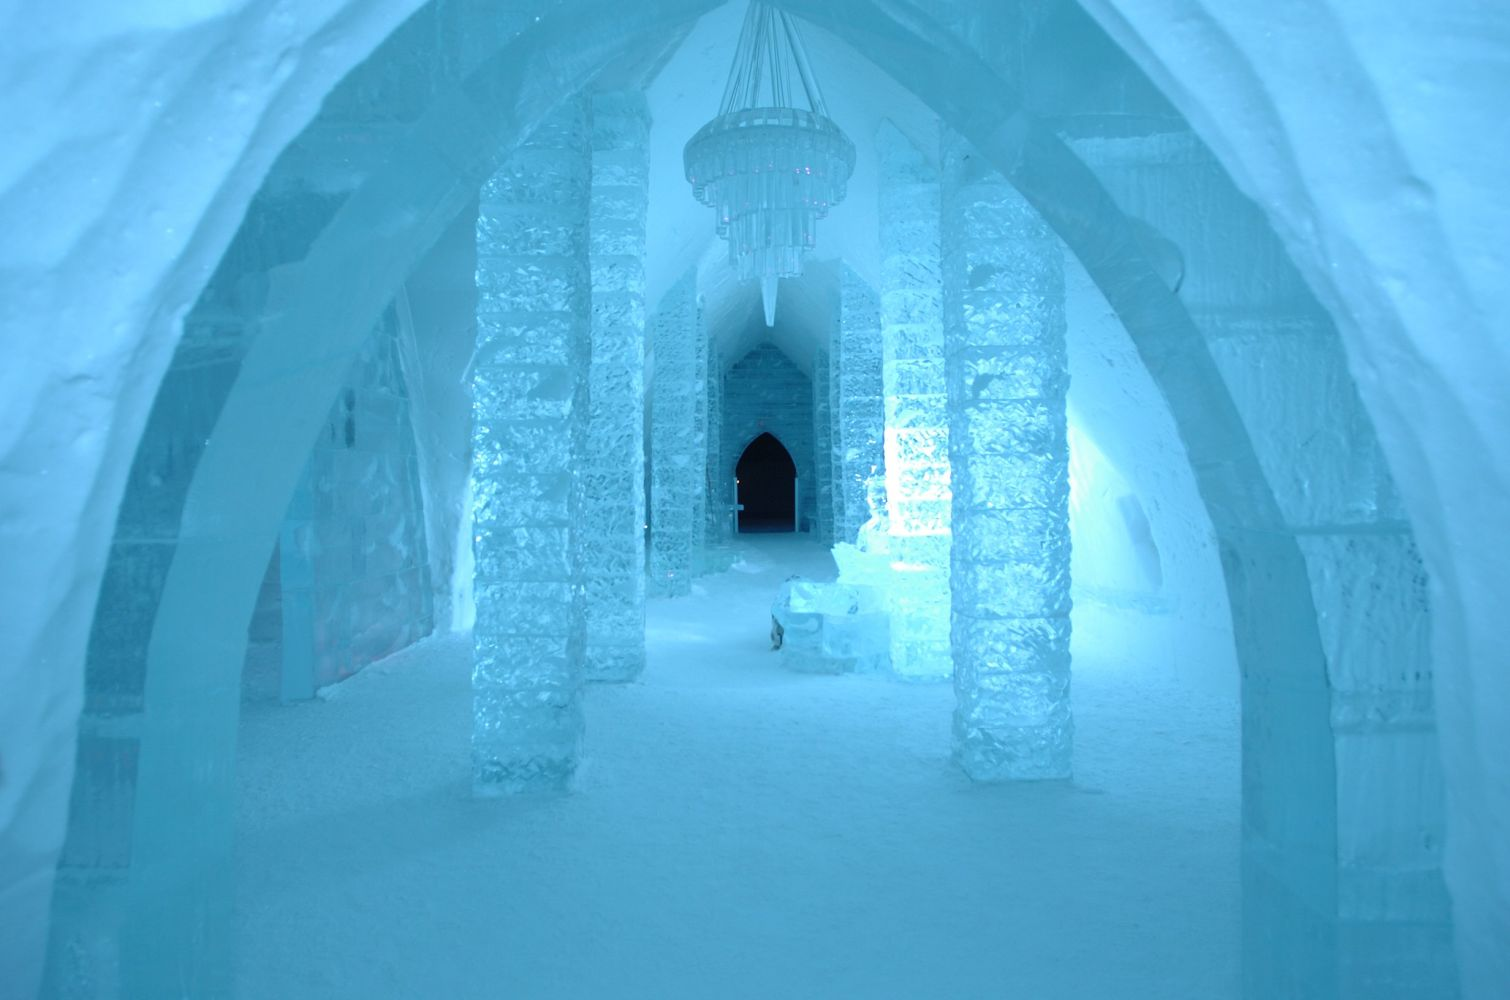 Islands for rent - The Ice Hotel - Quebec - Canada East/Central on ice hotels in usa, montreal quebec canada, travel quebec canada, plains of abraham quebec canada, christmas in quebec canada, map of quebec canada, ice hotel quebec winter carnival, northern lights quebec canada, winter quebec canada, ice village canada, fishing quebec canada, tourist attractions in winnipeg canada, province of quebec canada, luxury hotels in quebec canada, quebec quebec canada, banff springs hotel alberta canada, ice hotel in quebec, quebec city canada, gaspe peninsula quebec canada, ice hotel quebec 2014,